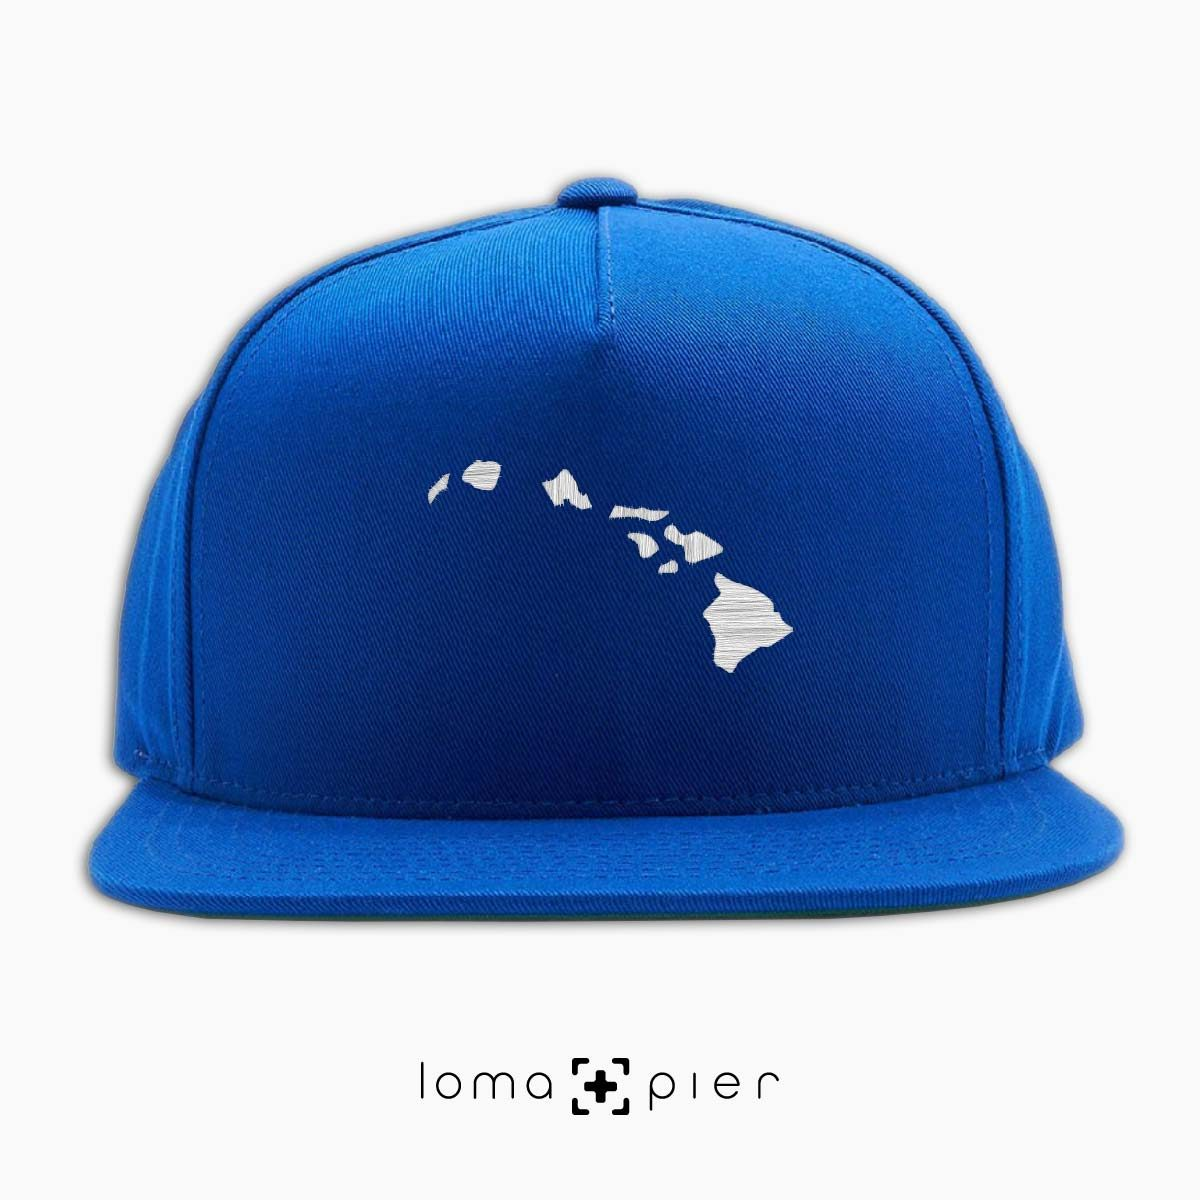 HAWAIIAN ISLANDS icon embroidered on a royal blue classic snapback hat by loma+pier hat store